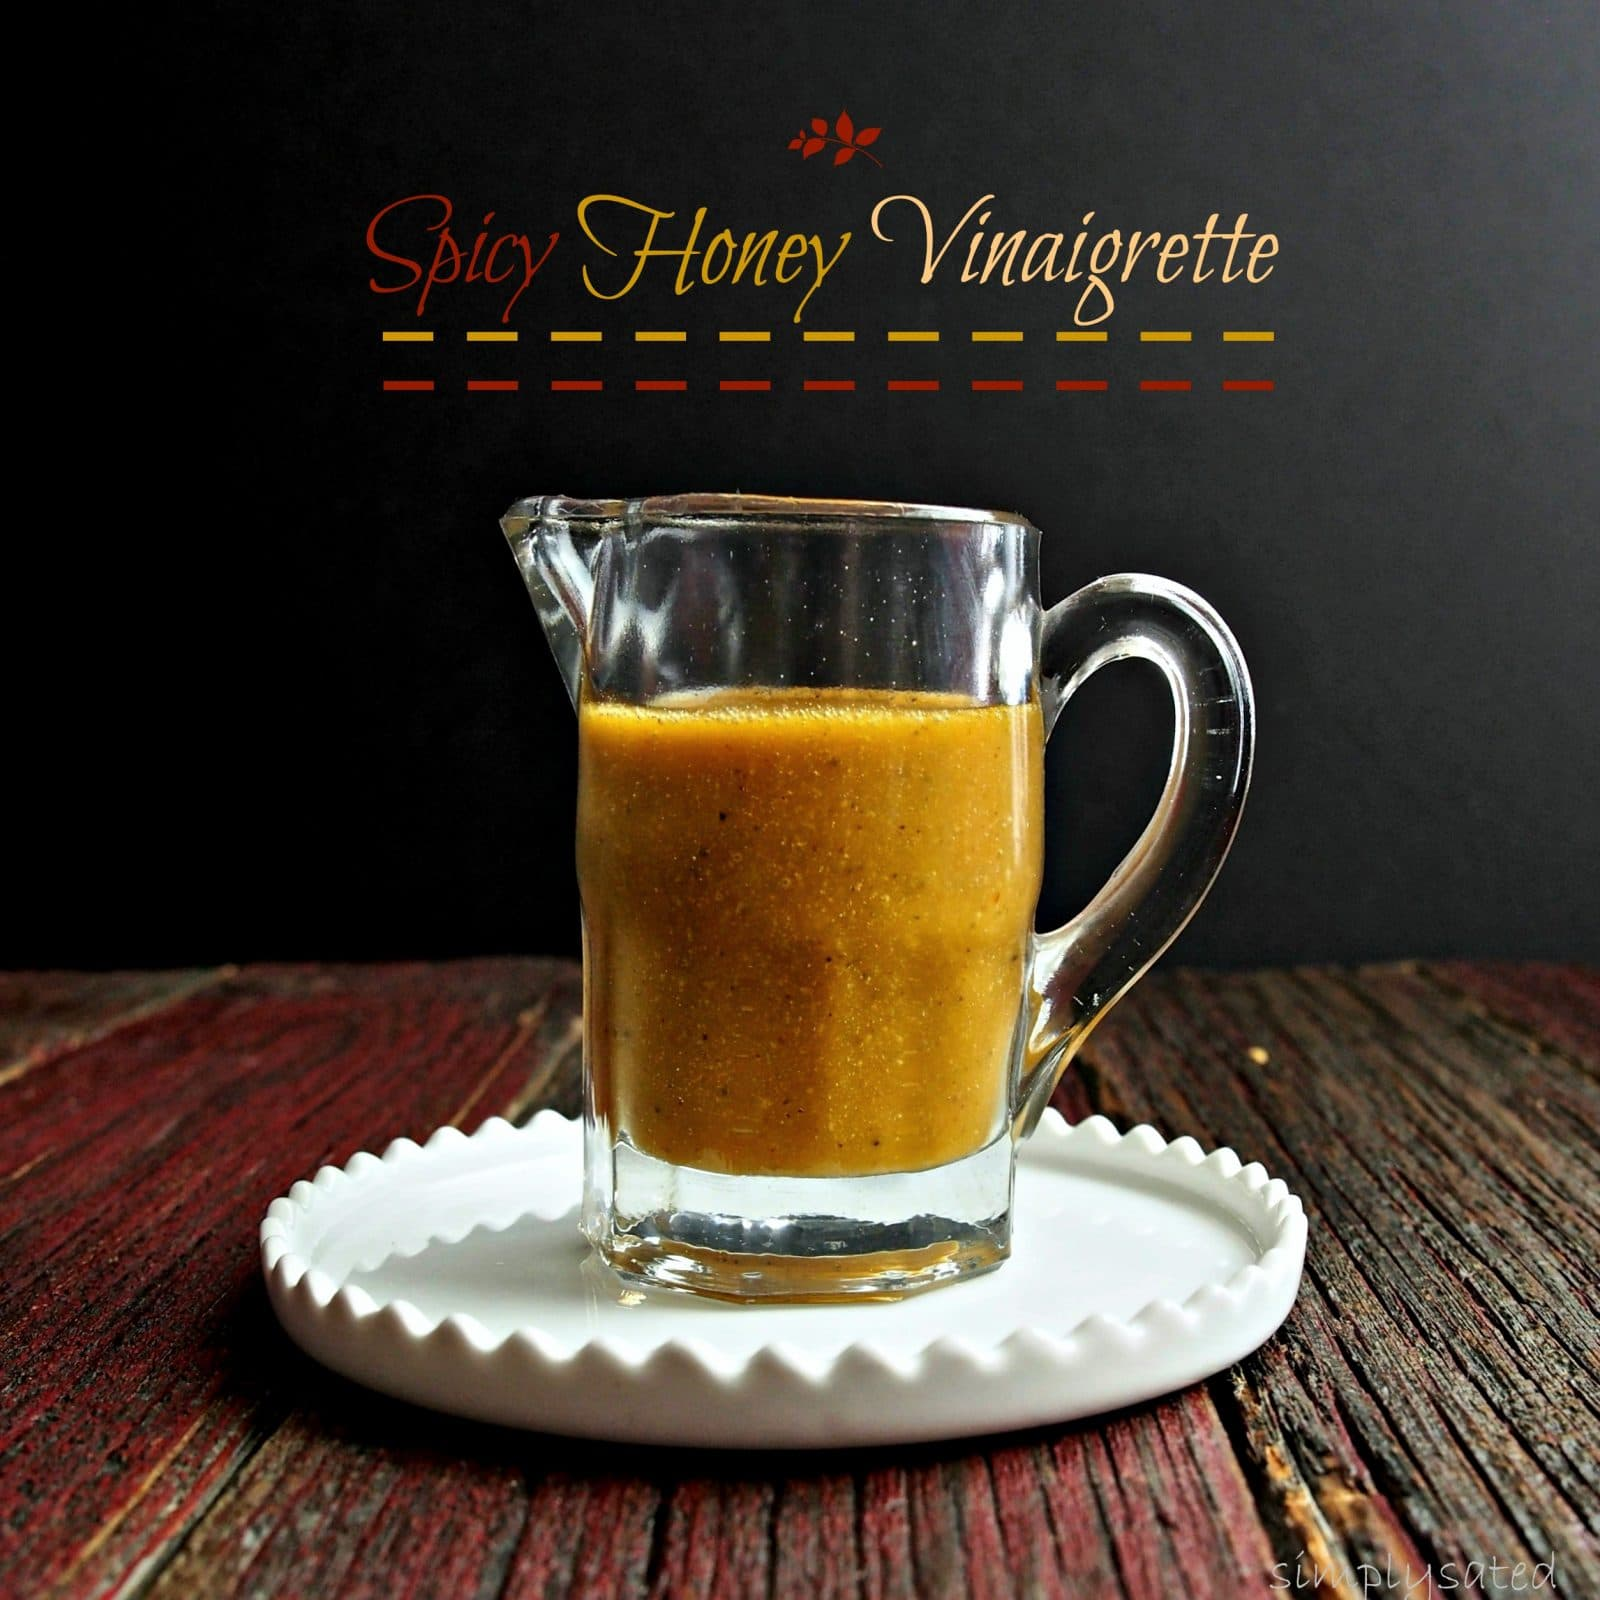 Spicy Honey Vinaigrette has a flavor profile that delivers a subtle punch without TKOing the taste buds. Cider vinegar, honey, soy sauce, garlic & ginger. Simply Sated